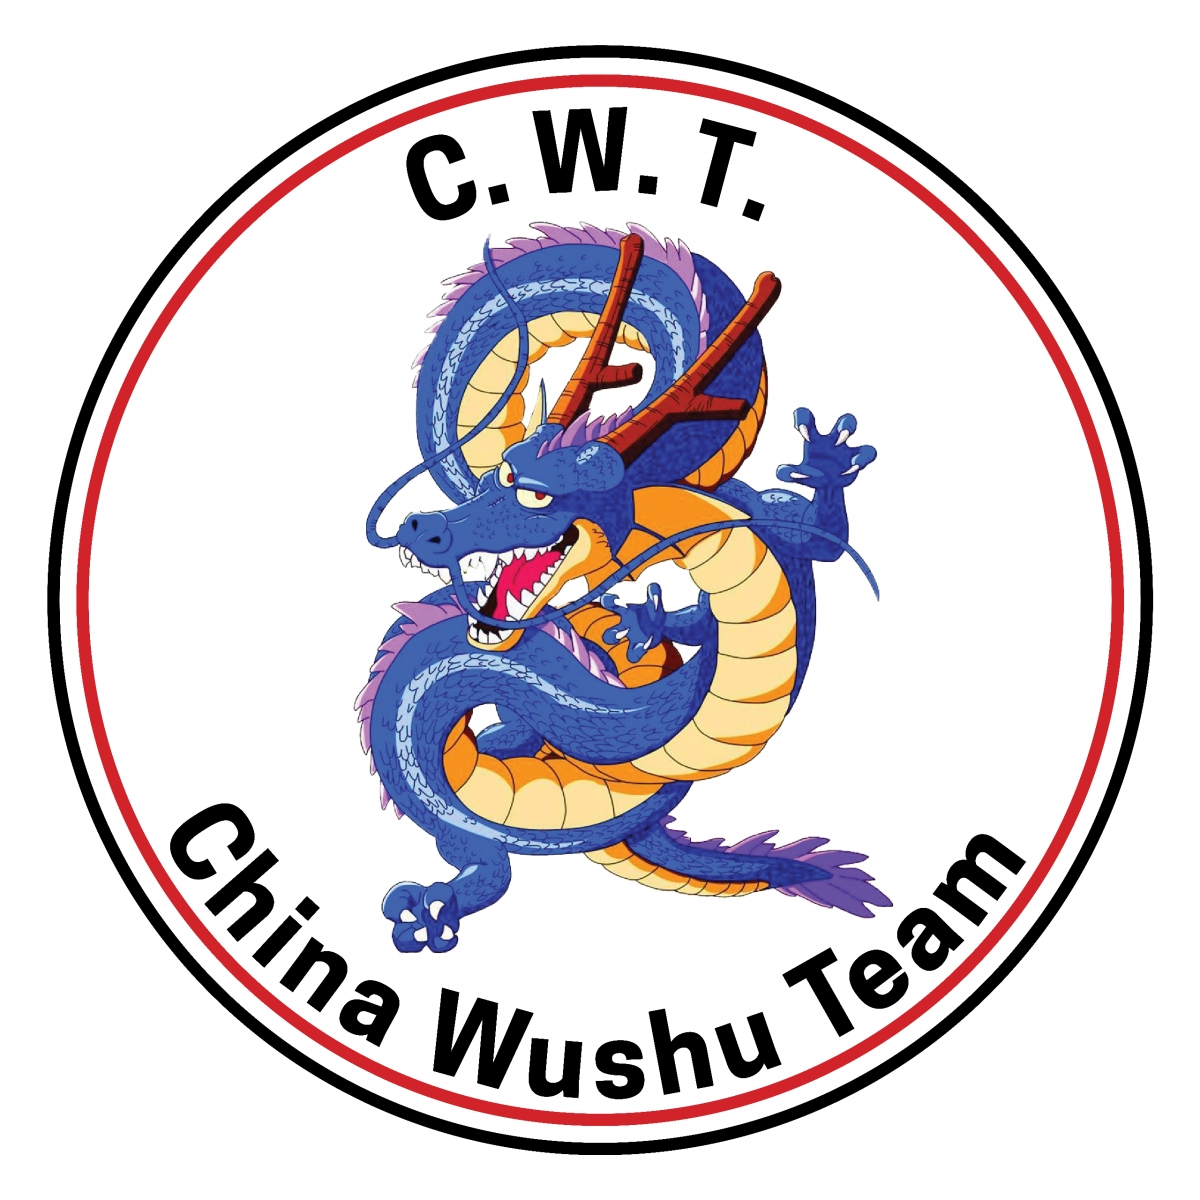 A.S.D. CHINA WUSHU TEAM MONZA